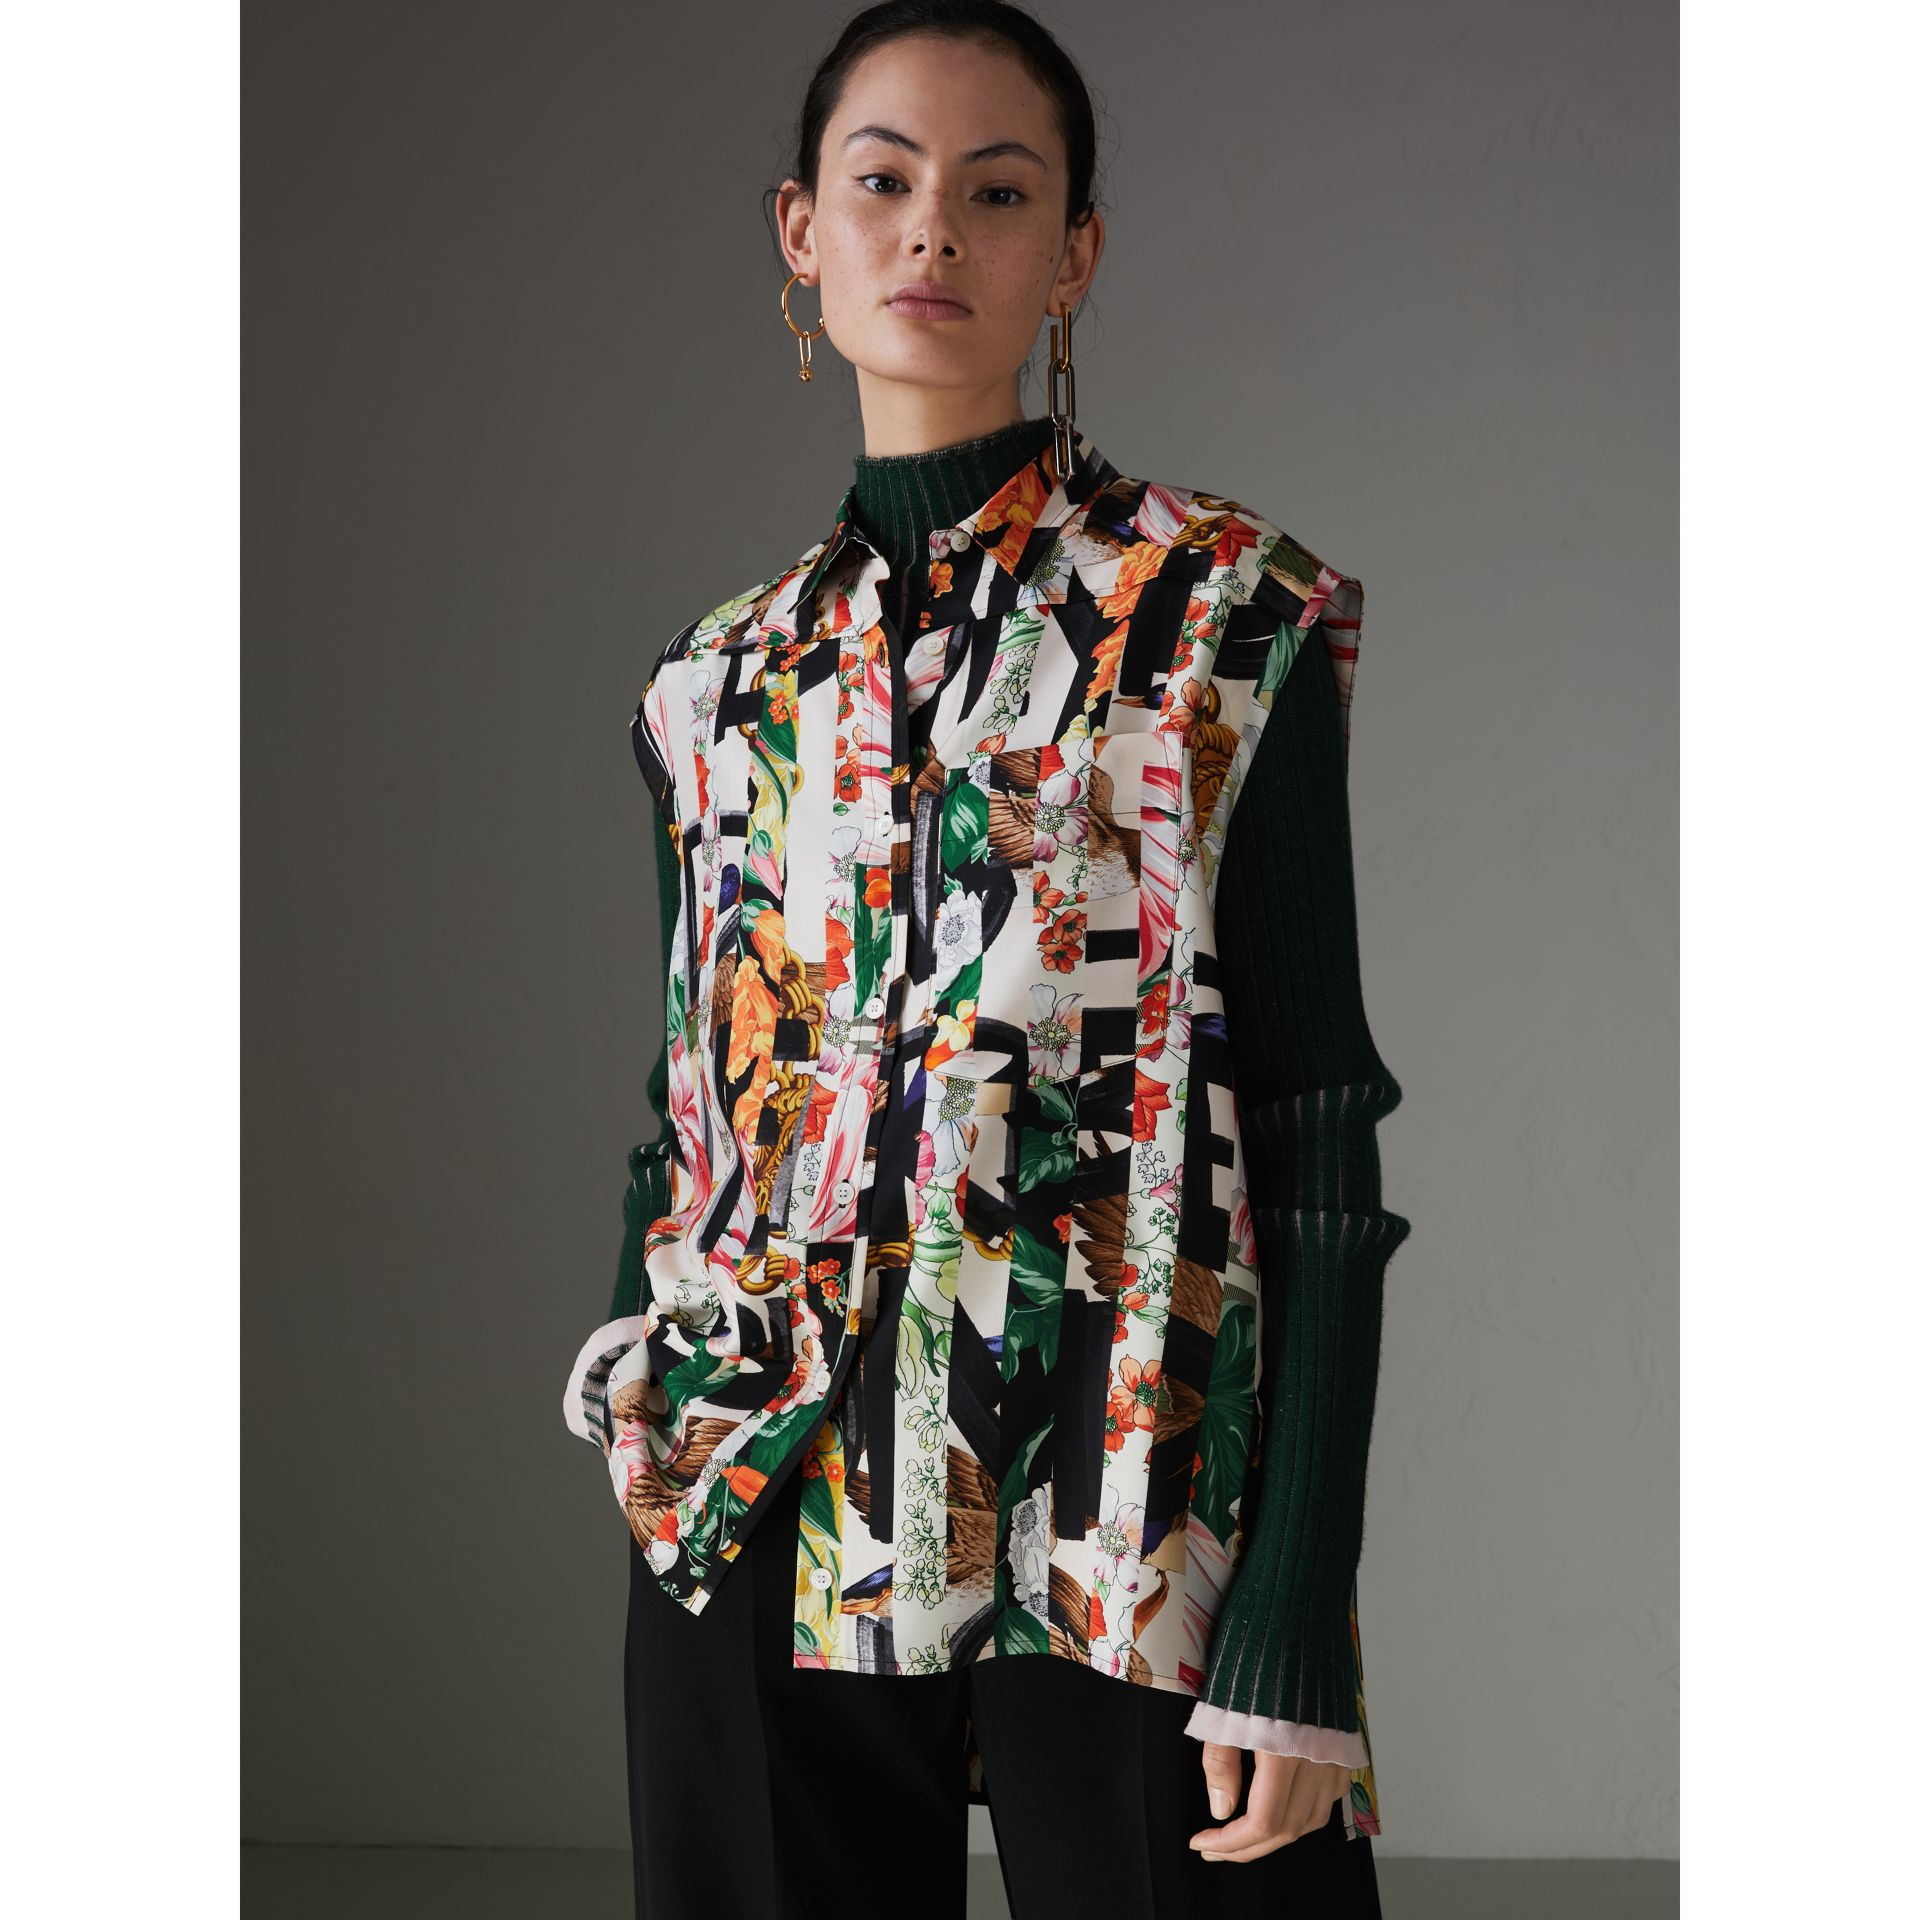 Archive Scarf Print Silk Sleeveless Shirt in Multicolour - Women | Burberry United Kingdom - gallery image 4